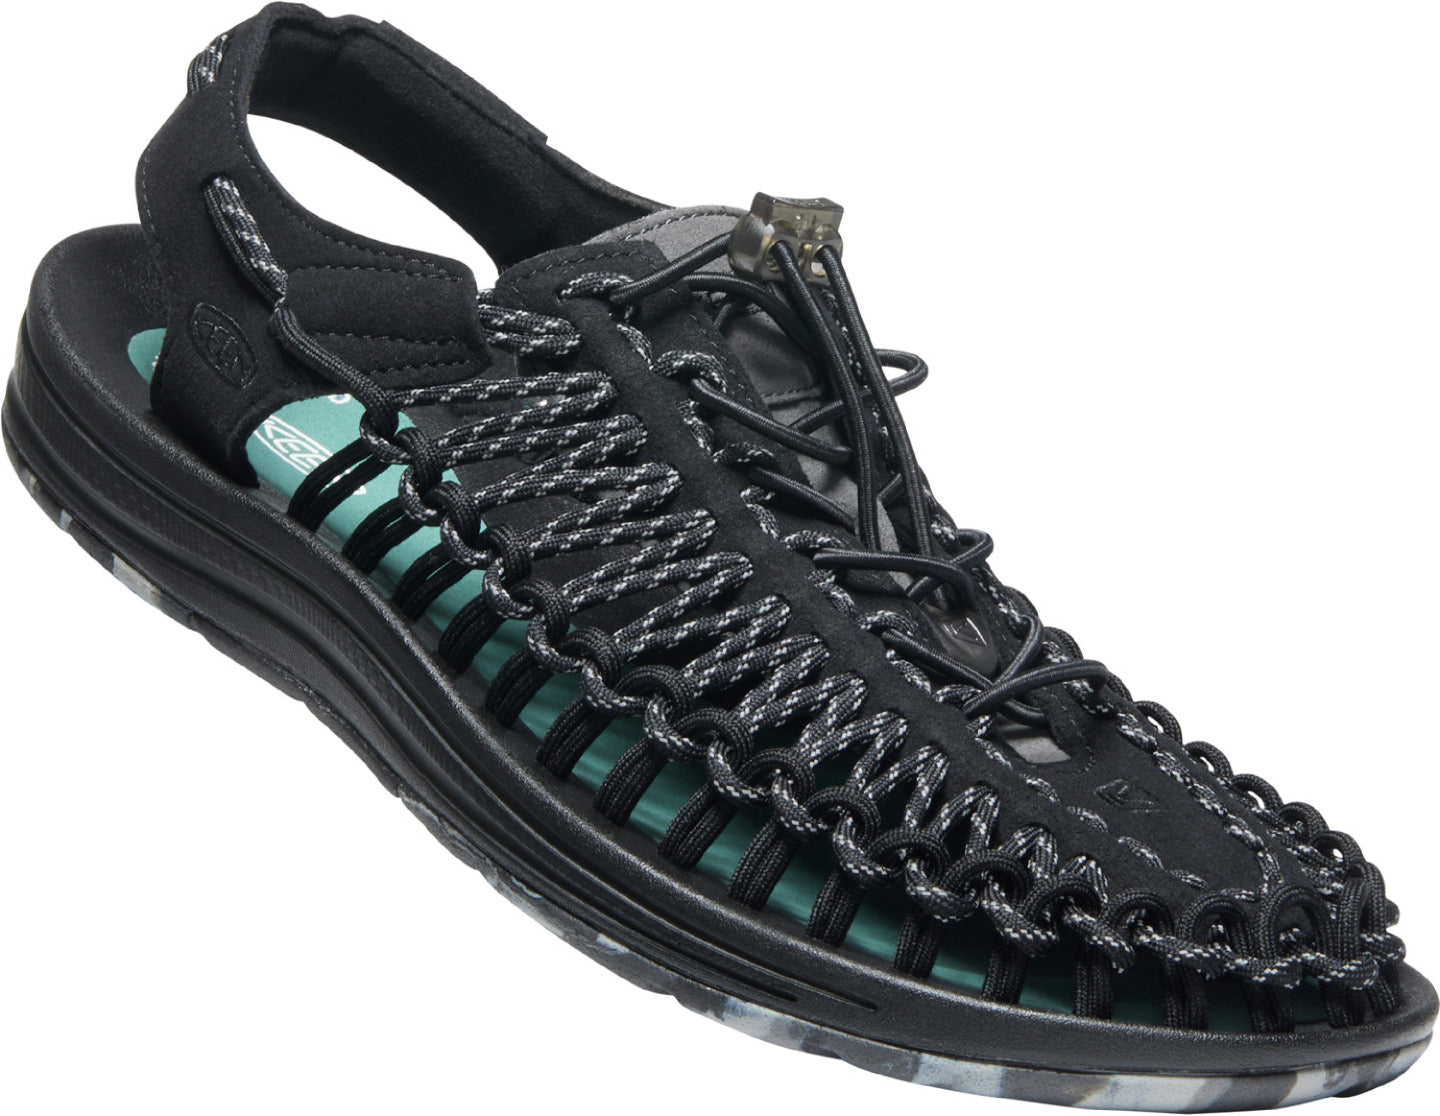 Men's KEEN Uneek Classic Two Cord Sandal in GLR BLACK color from the front